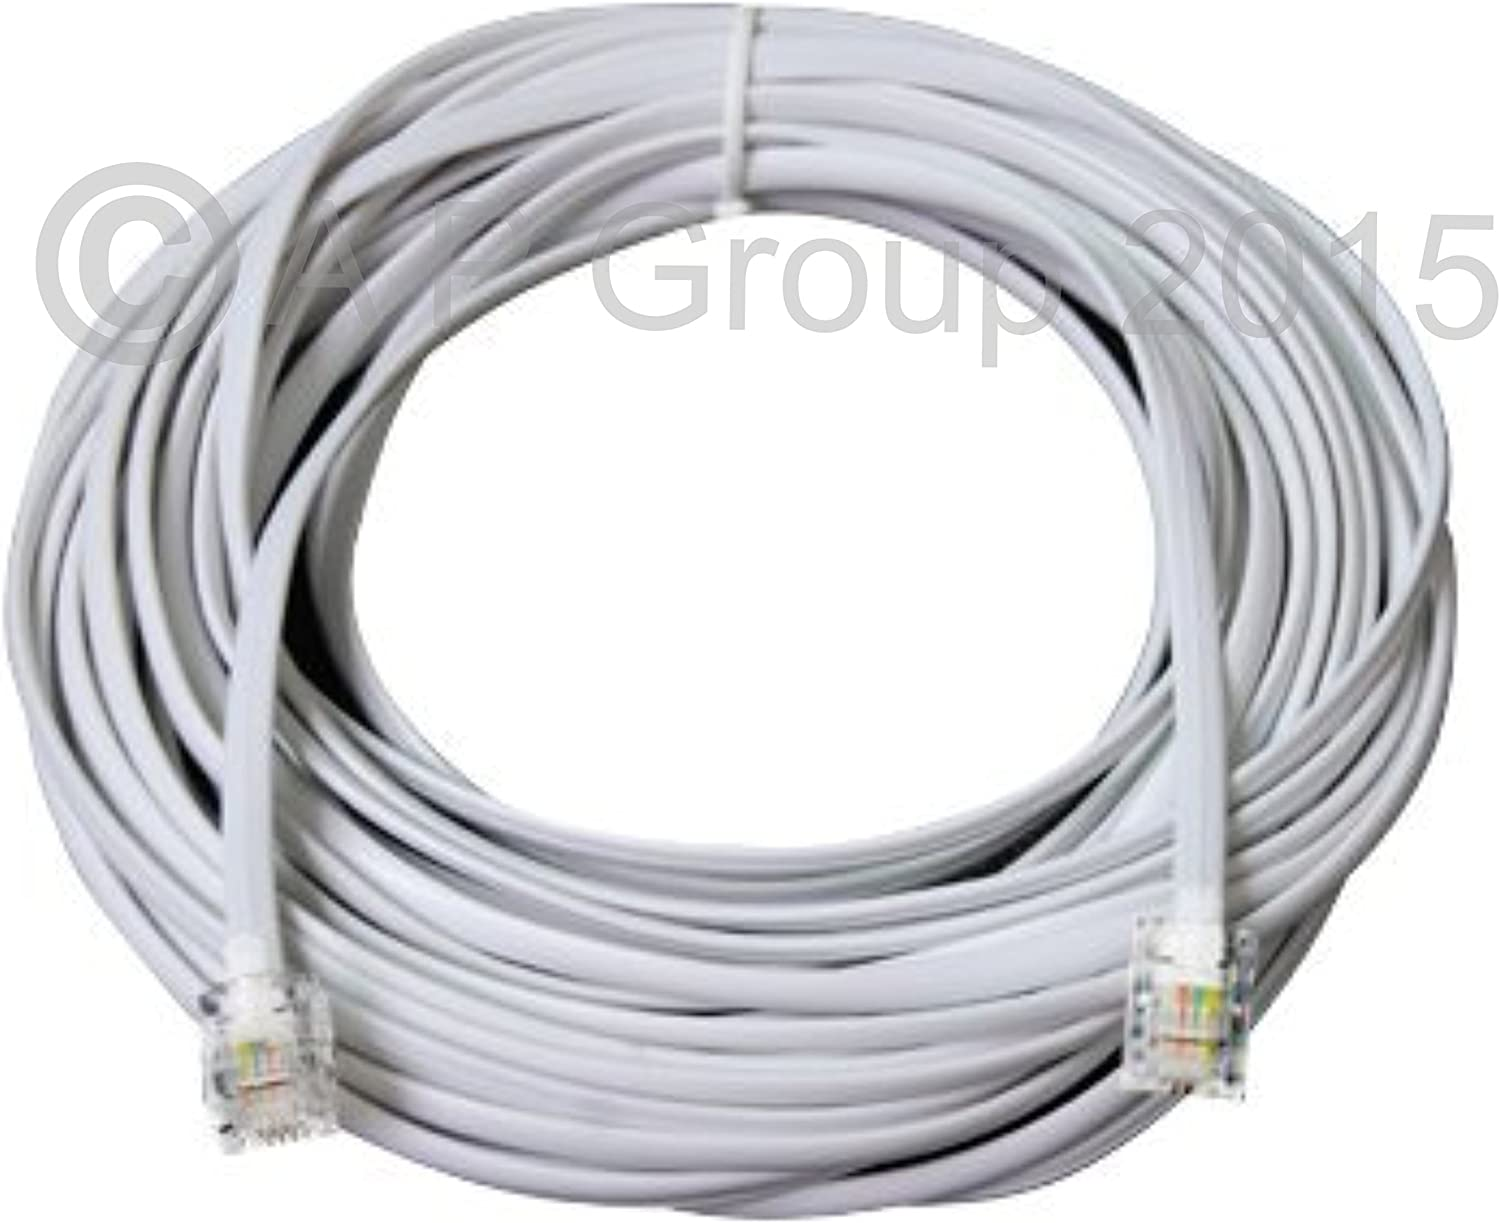 rhinocables/® RJ11 ADSL Cable Premium Quality Lead High Speed Male BT Internet Broadband Modem Router Telephone Wire 30m, White